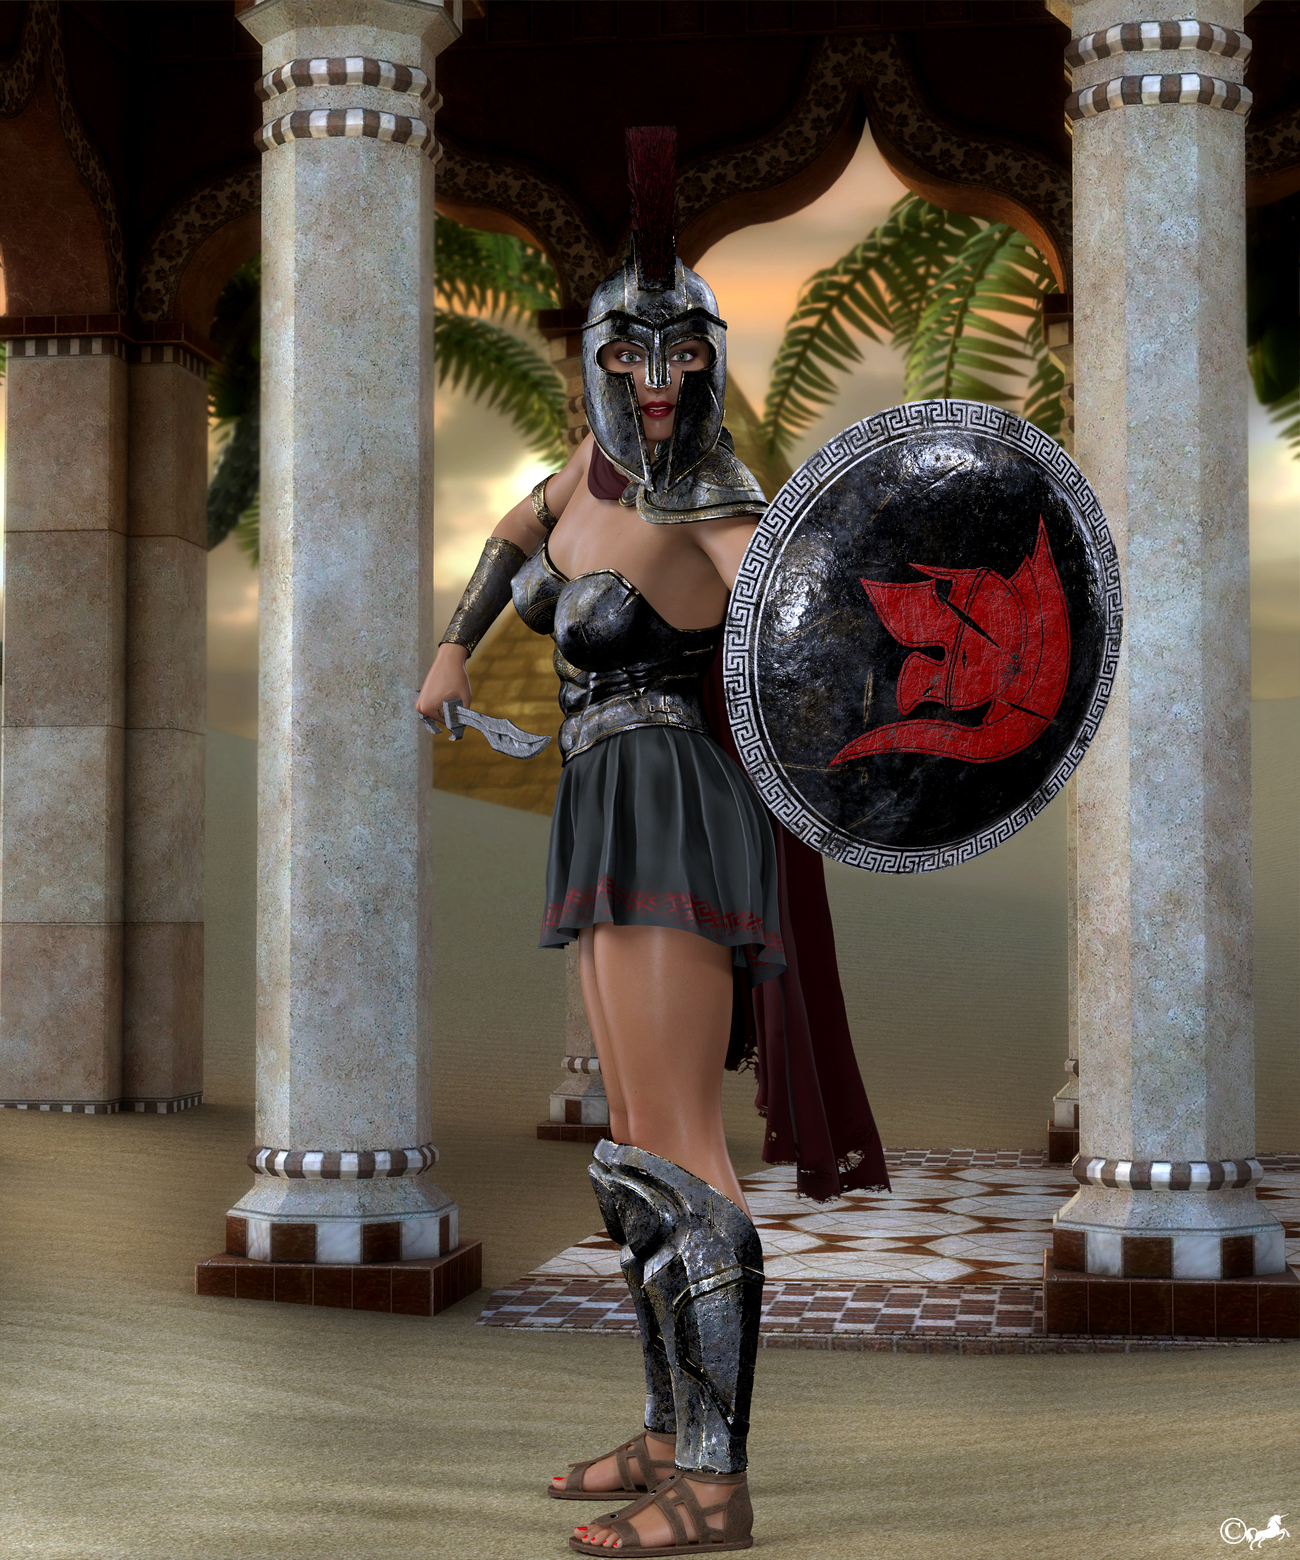 DAZ 1101 or Inanna by miwi